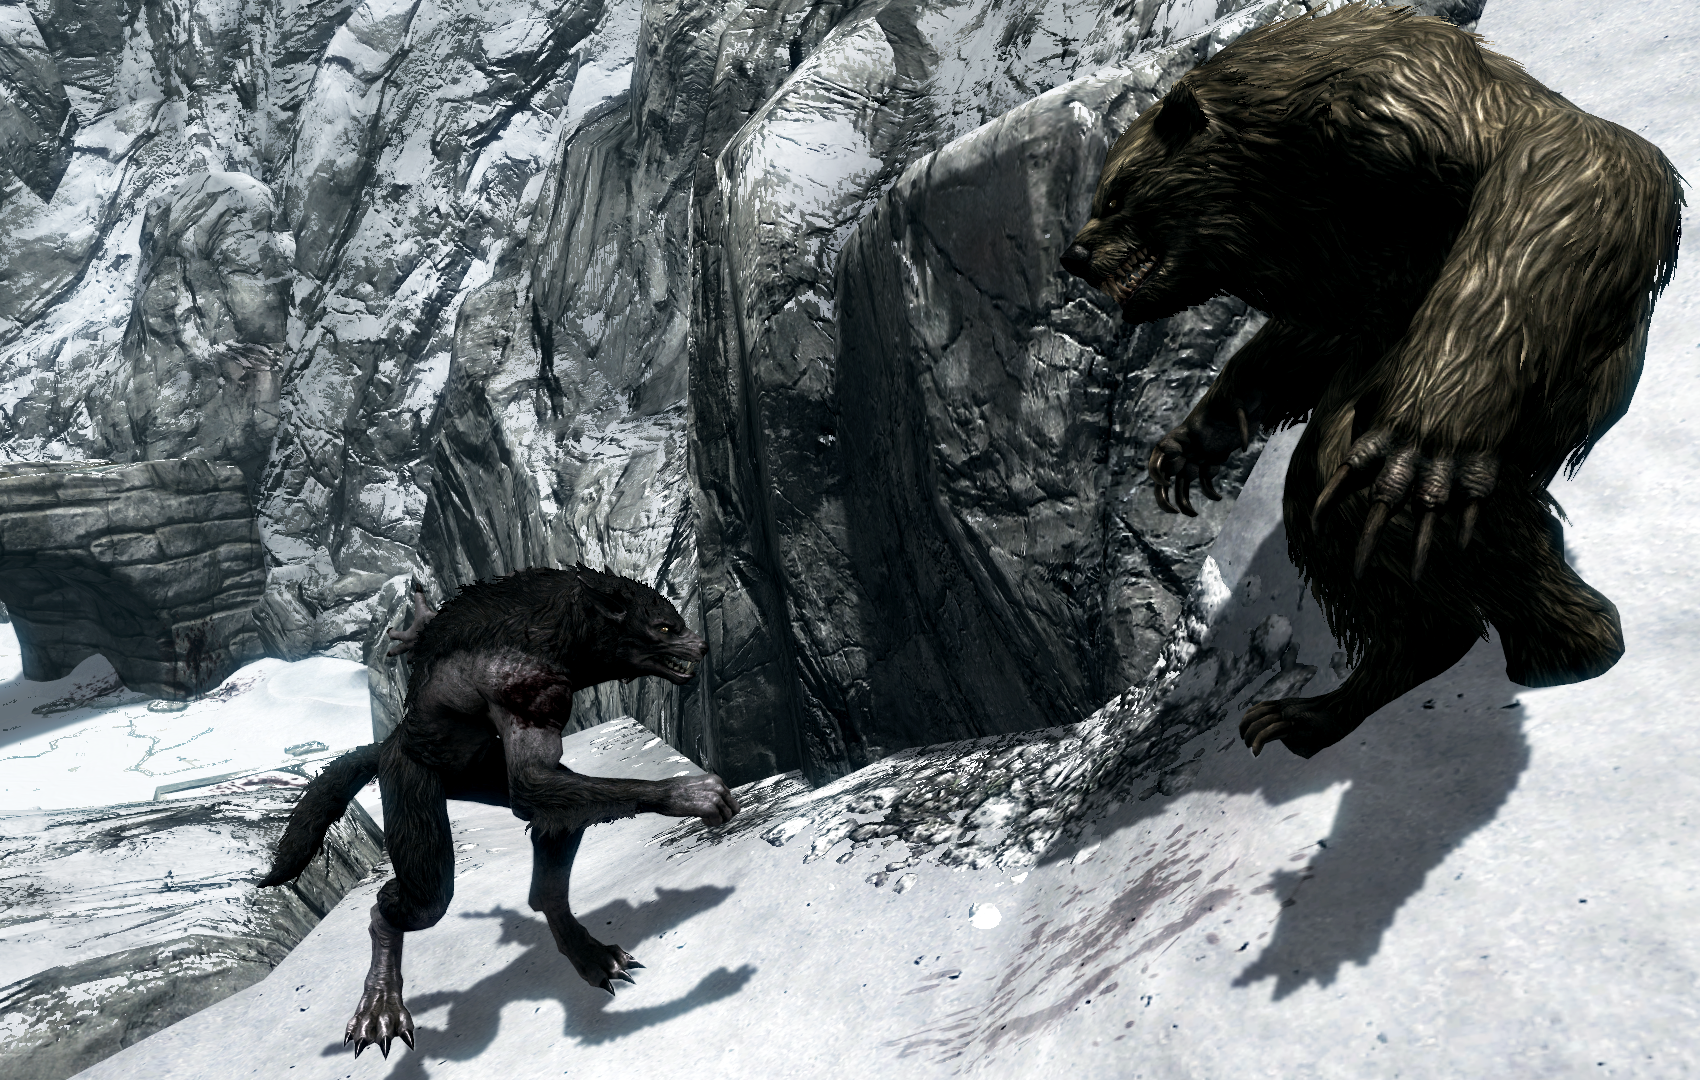 1700x1080 Fine HDQ Cover Images of Werewolf, Full HD 1080p Desktop Images for PC&Mac, Laptop, Tablet, Mobile Phone